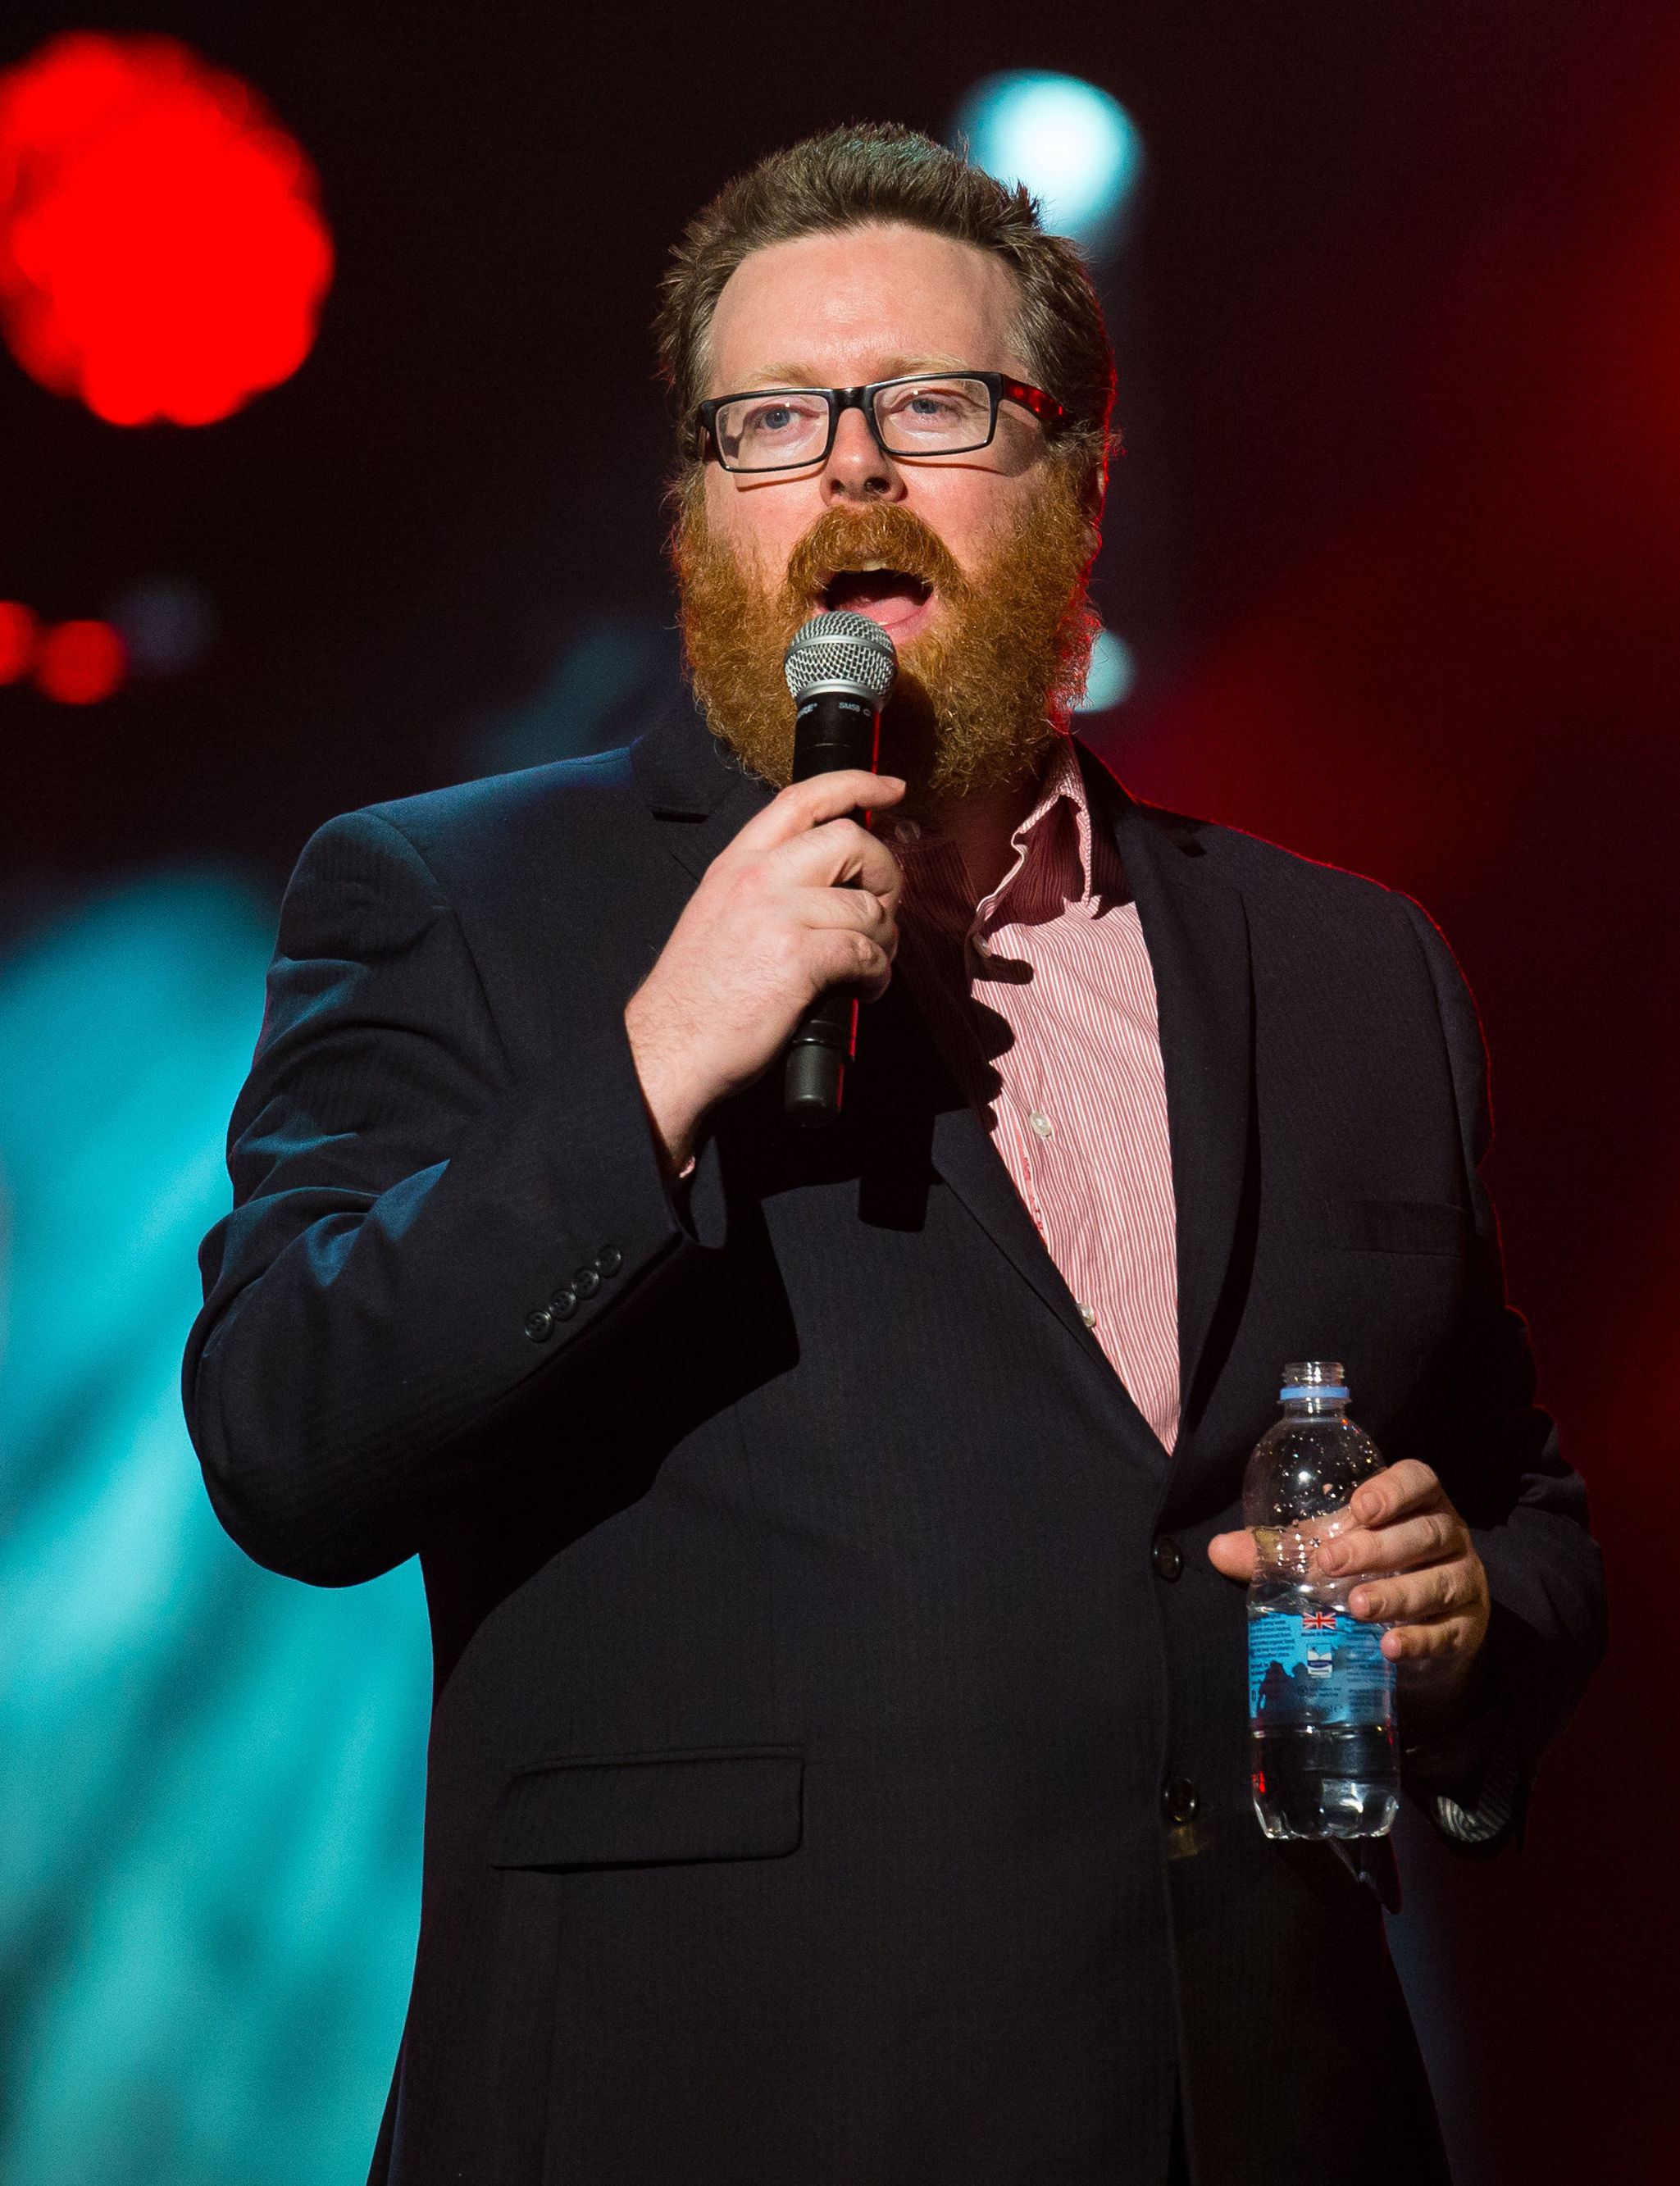 File photo dated 24/03/15 of Frankie Boyle, who is returning to the BBC with a topical news comedy show. PRESS ASSOCIATION Photo. Issue date: Wednesday April 26, 2017. The Scottish comic, 44, has sparked anger in the past with a string of jokes, causing o